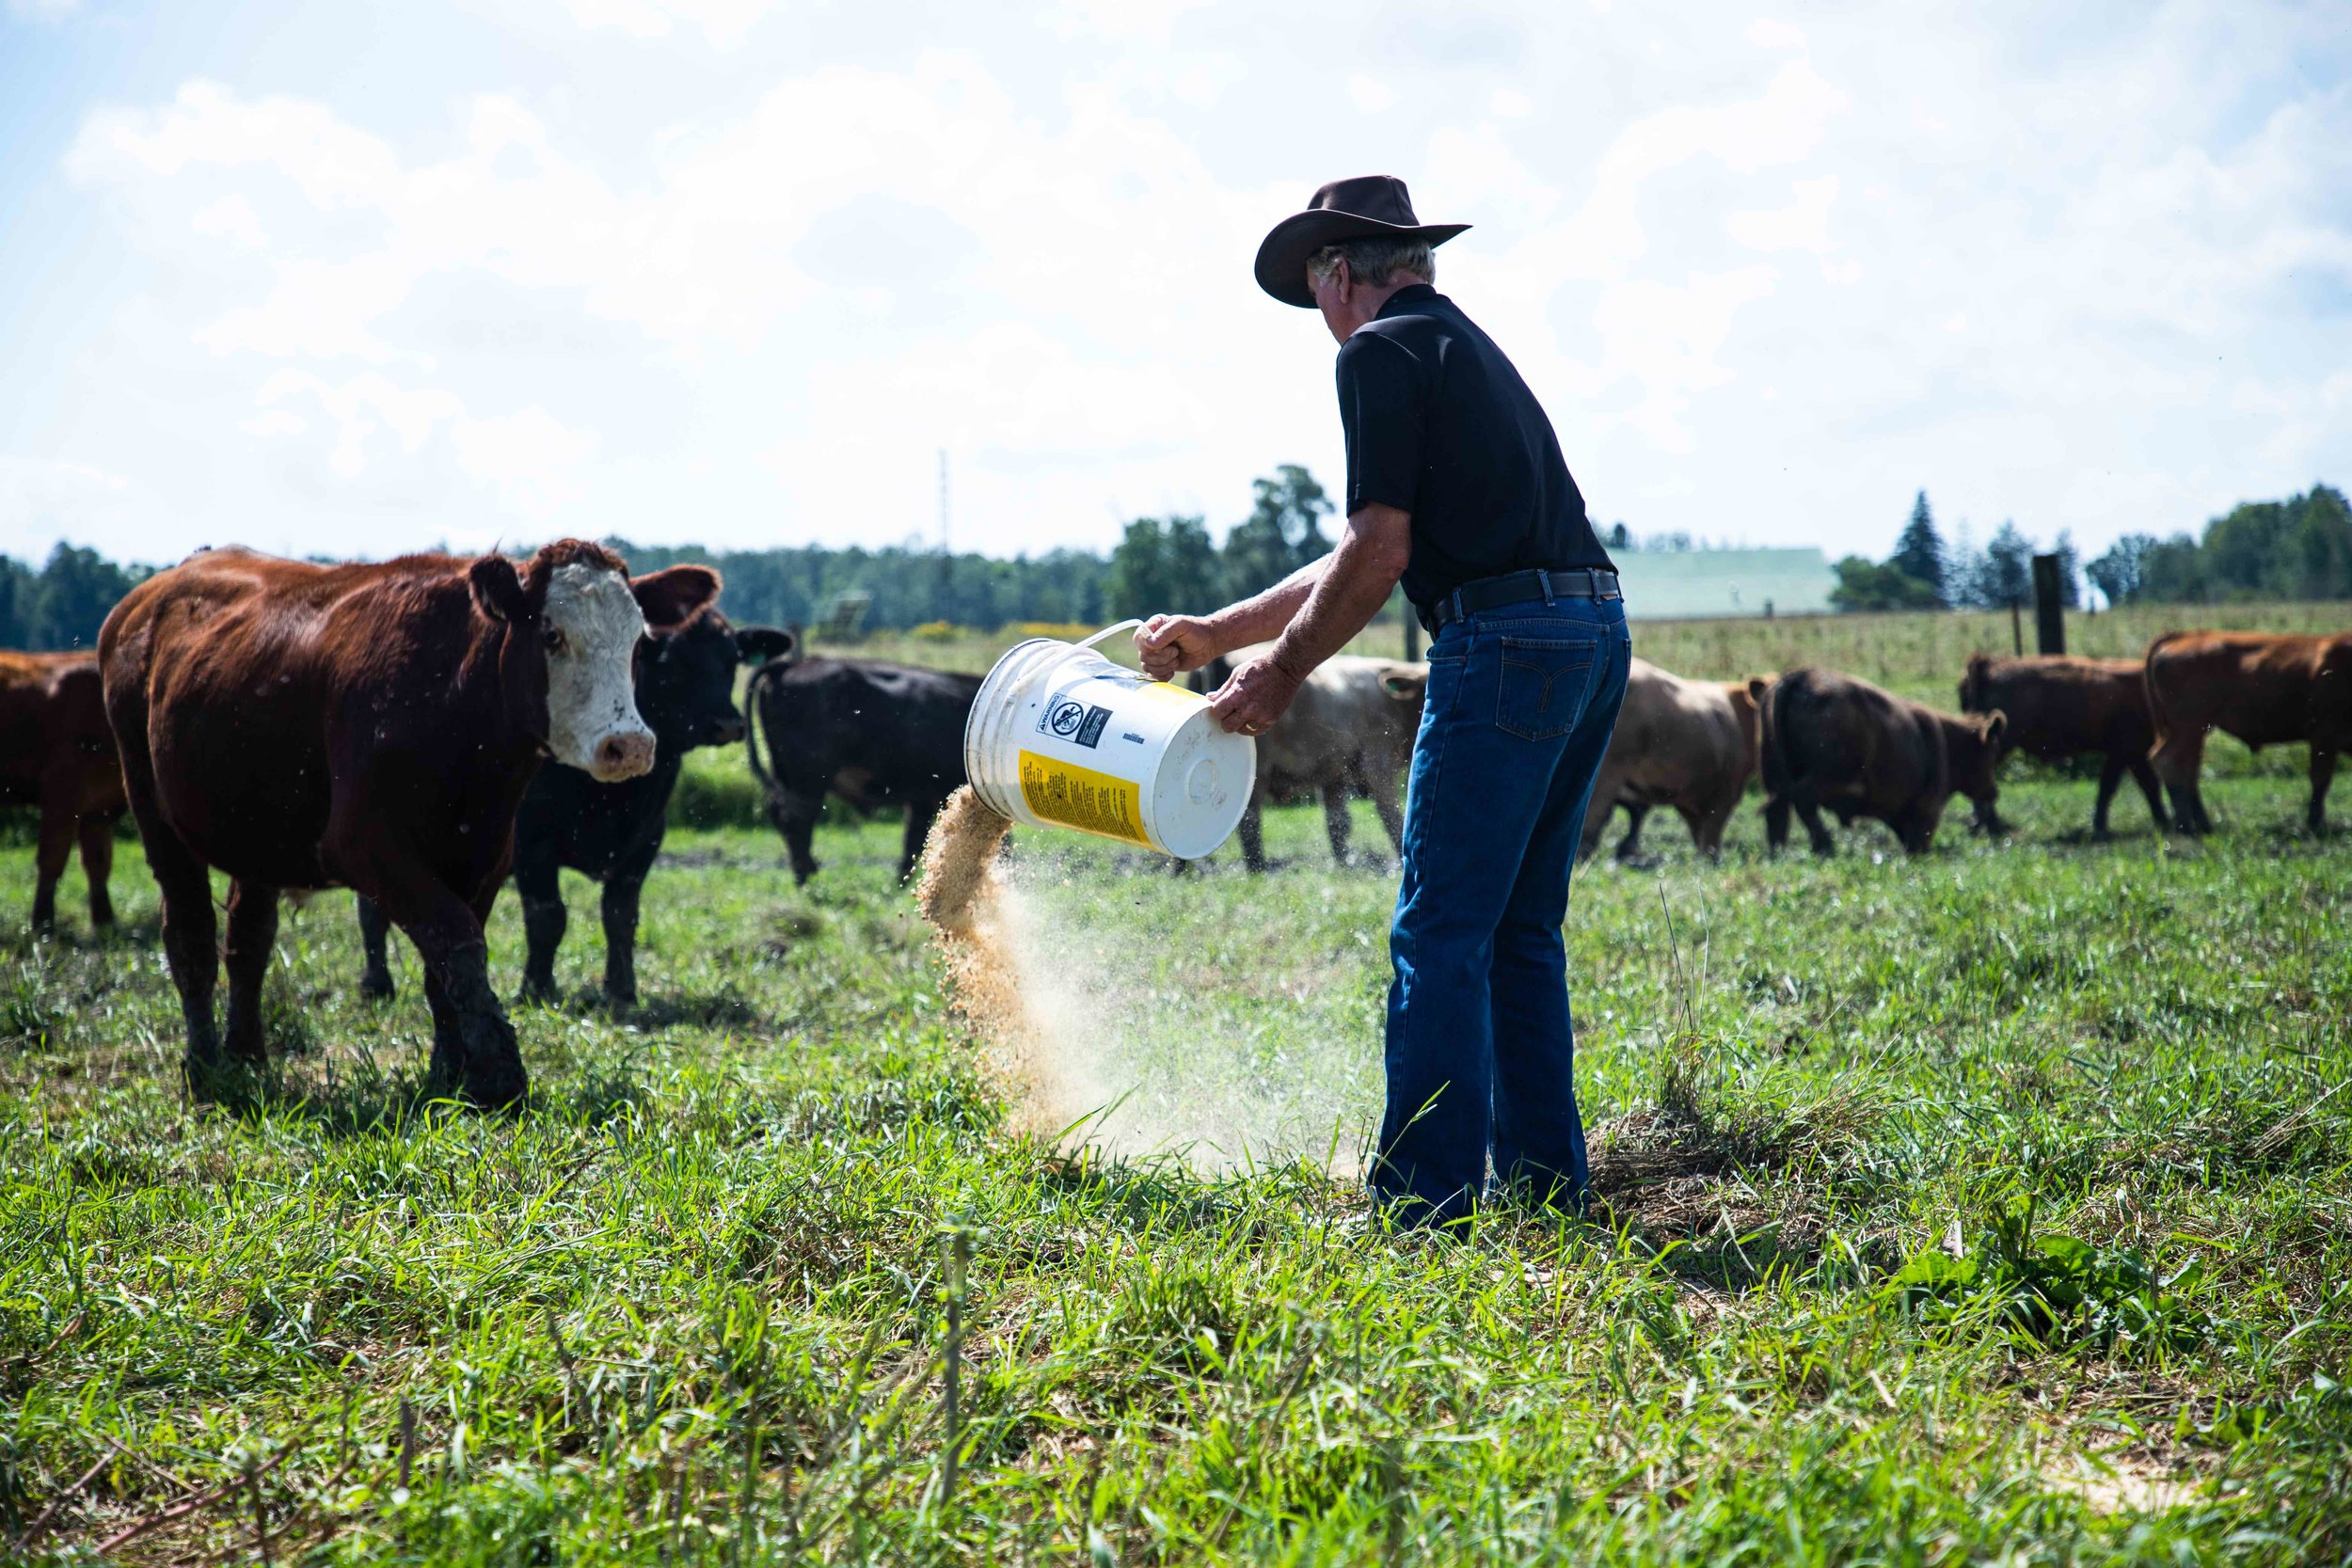 Jodie-Aldred-Photography-Chatham-Kent-Elgin-Middlesex-London-Ontario-Farm-Family-cattle-feed-corn.jpg